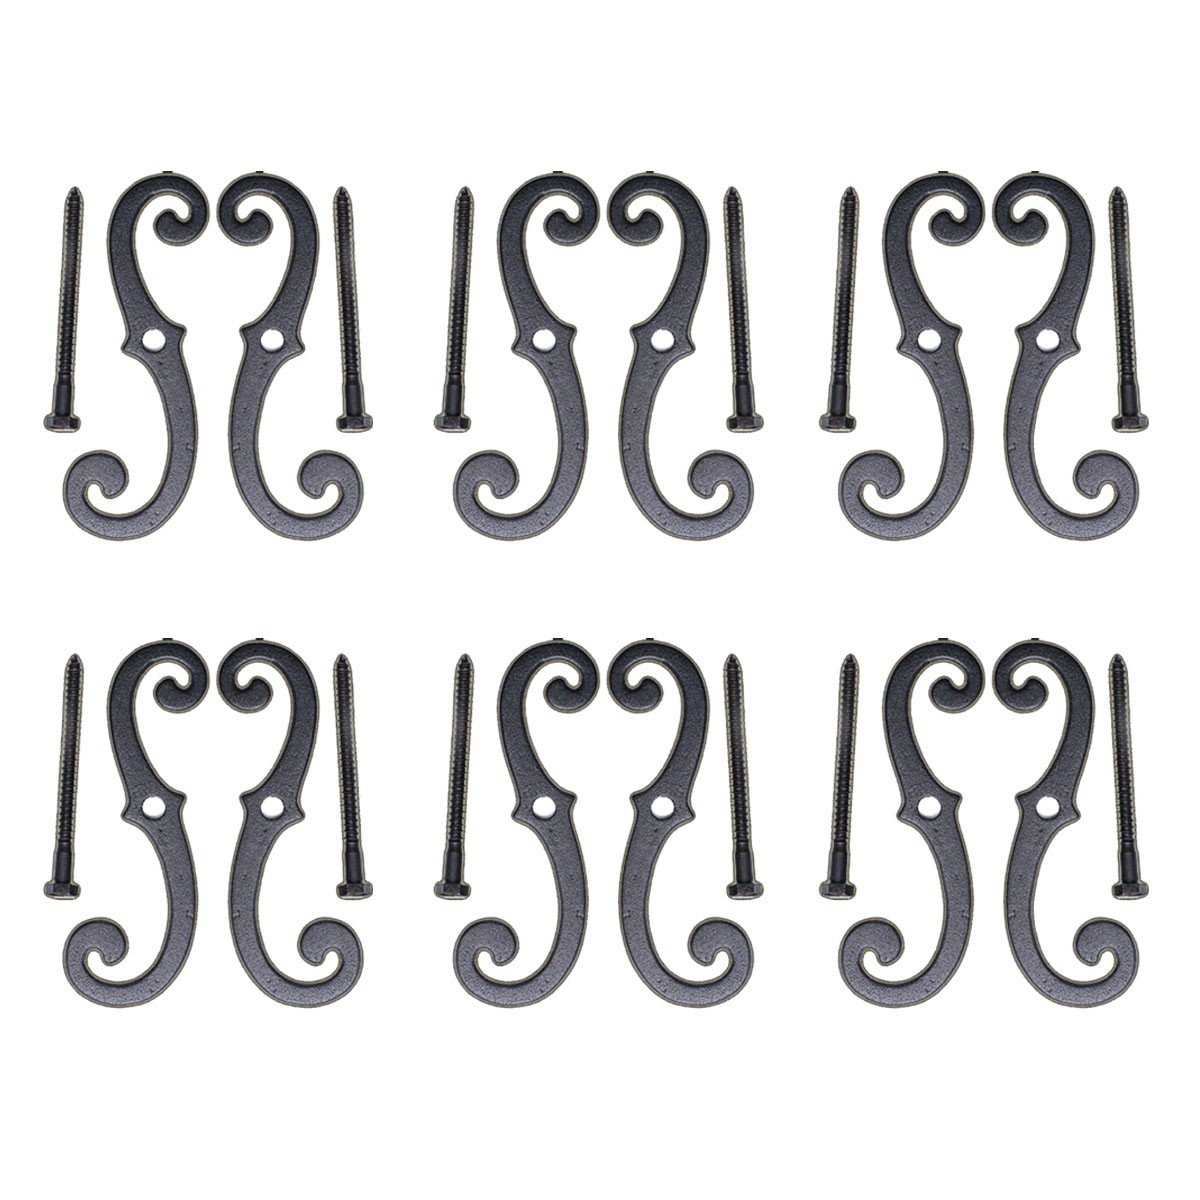 6 Shutter Dog Pairs Set Black Aluminum Scroll 6-1/2'' | Renovator's Supply